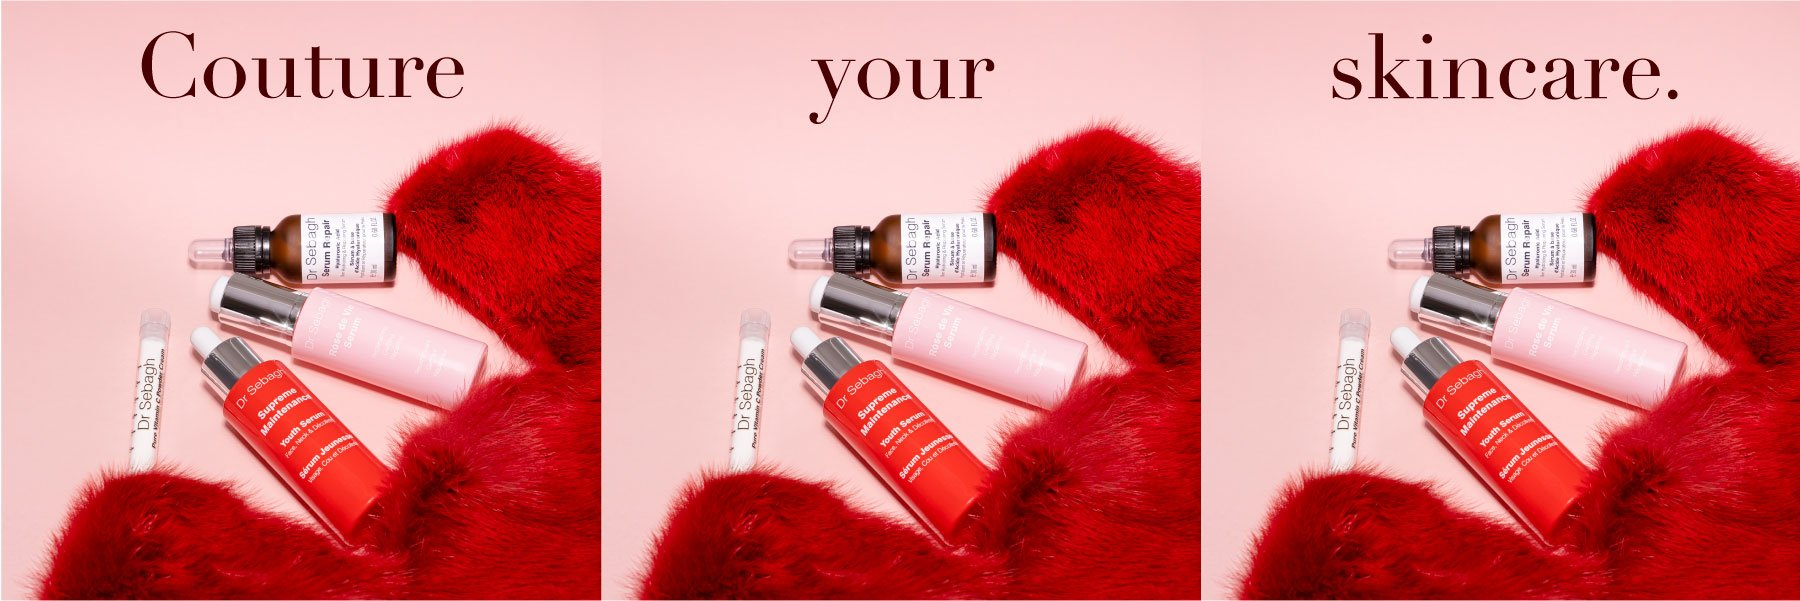 Dr Sebagh Couture Your Skincare